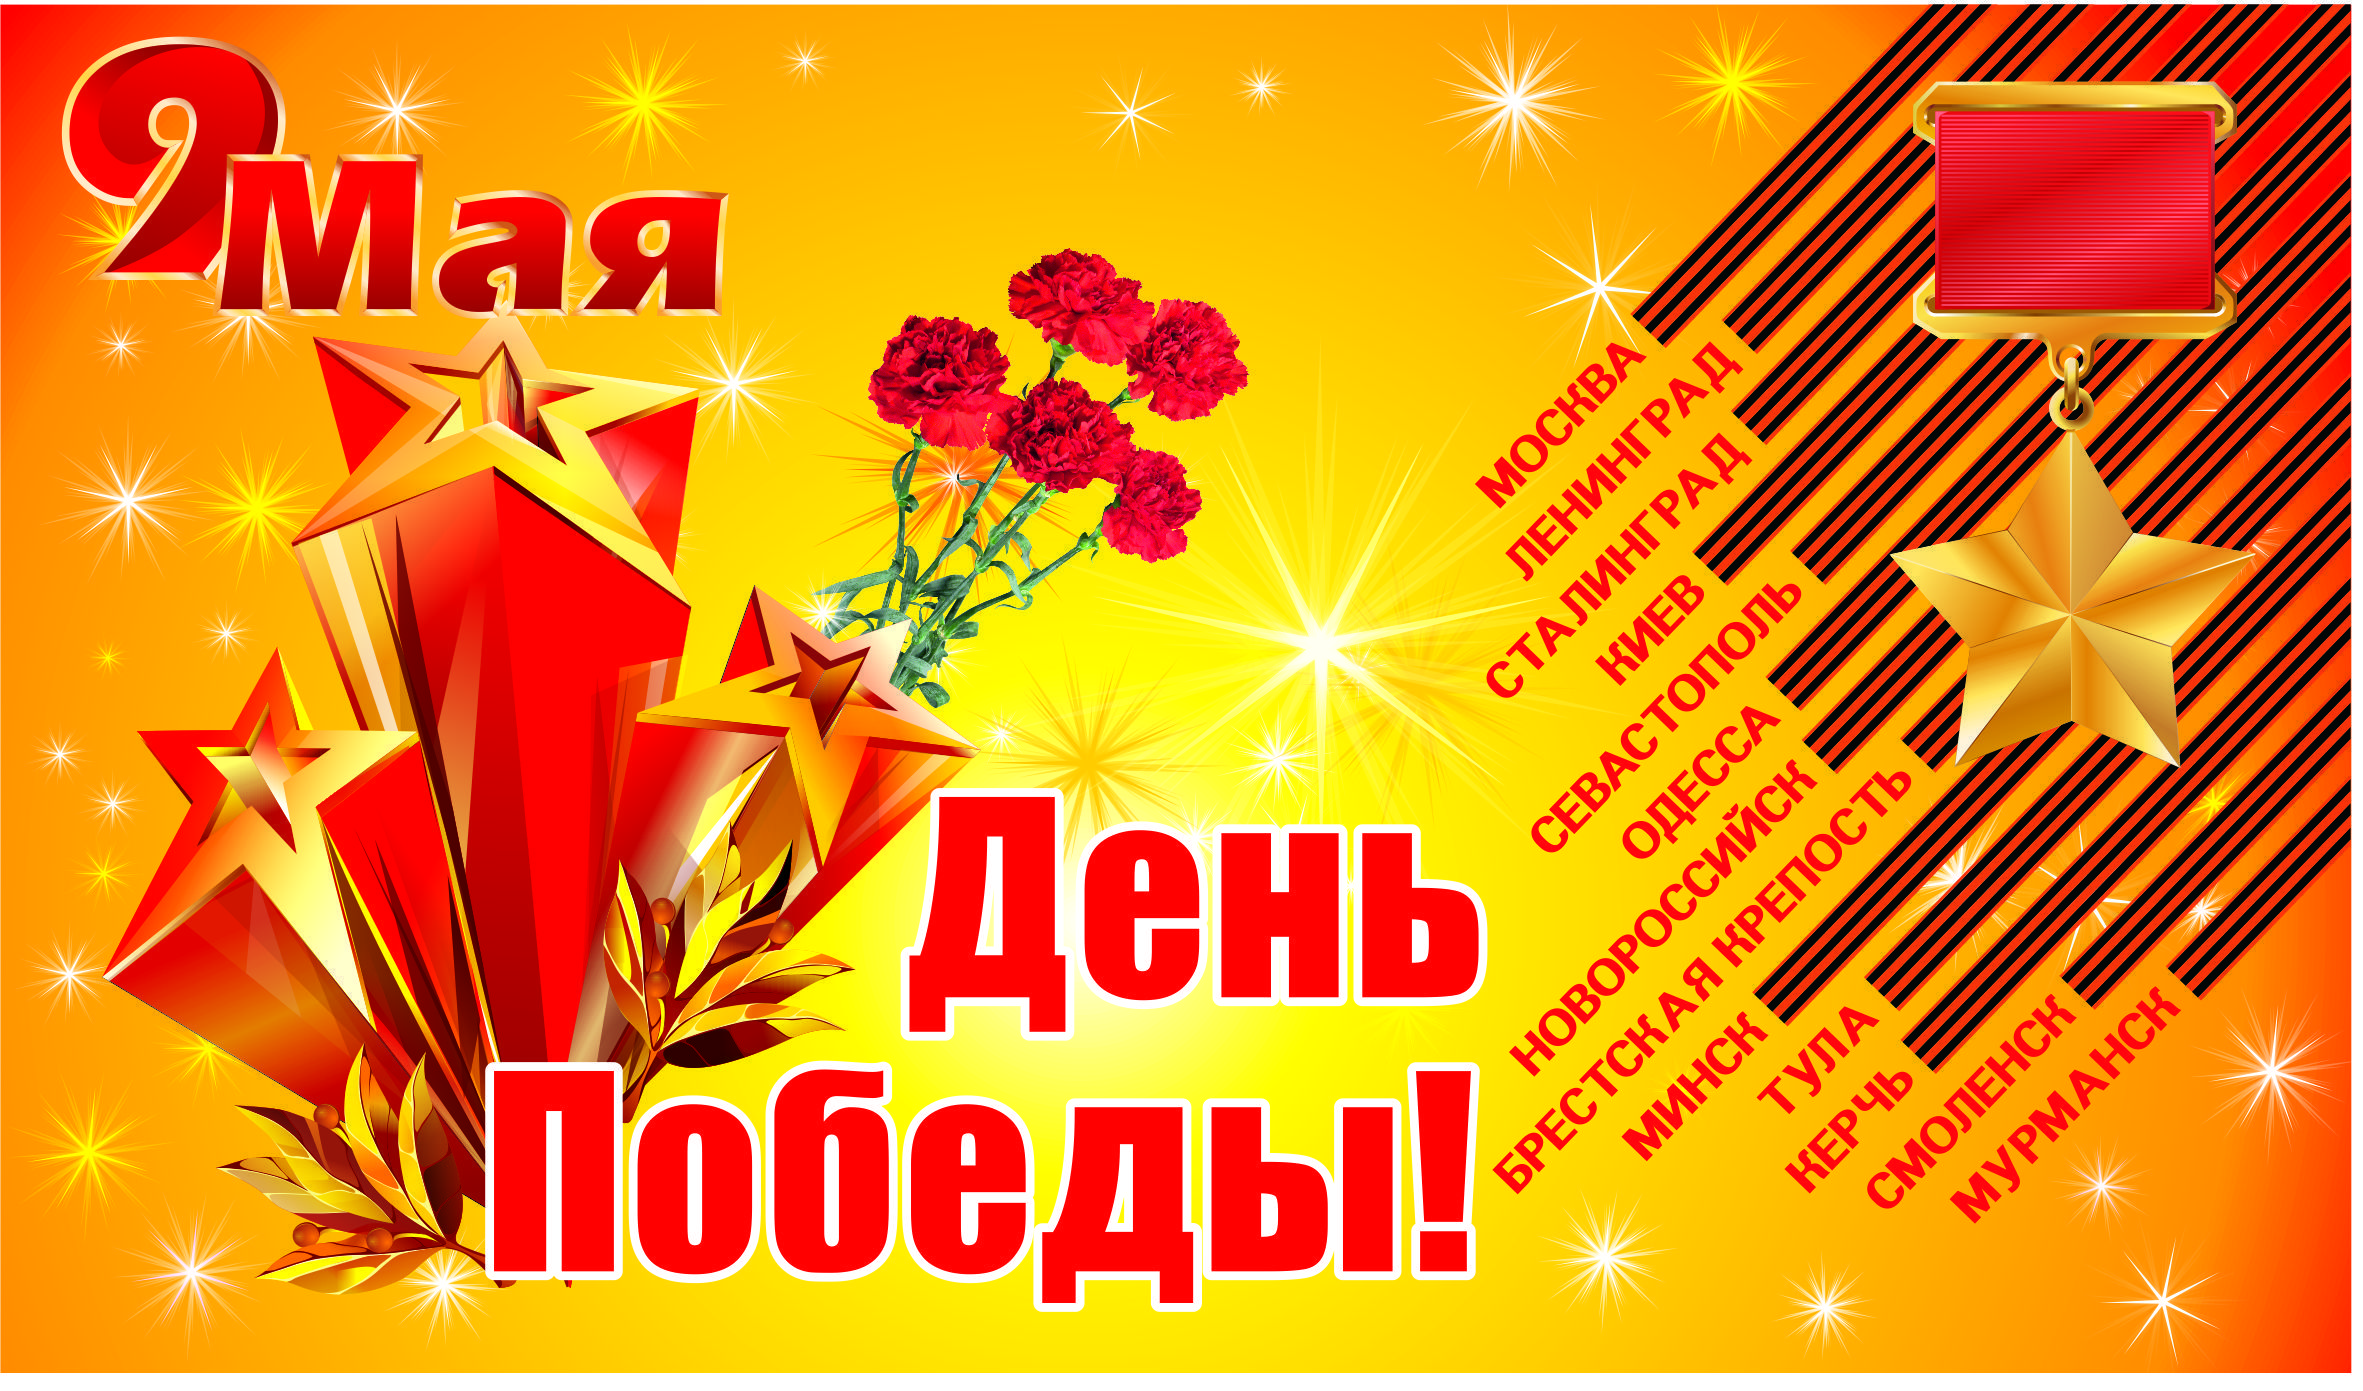 Holidays___May_9_Beautiful_card_in_the_May_9_Victory_Day_078756_.jpg